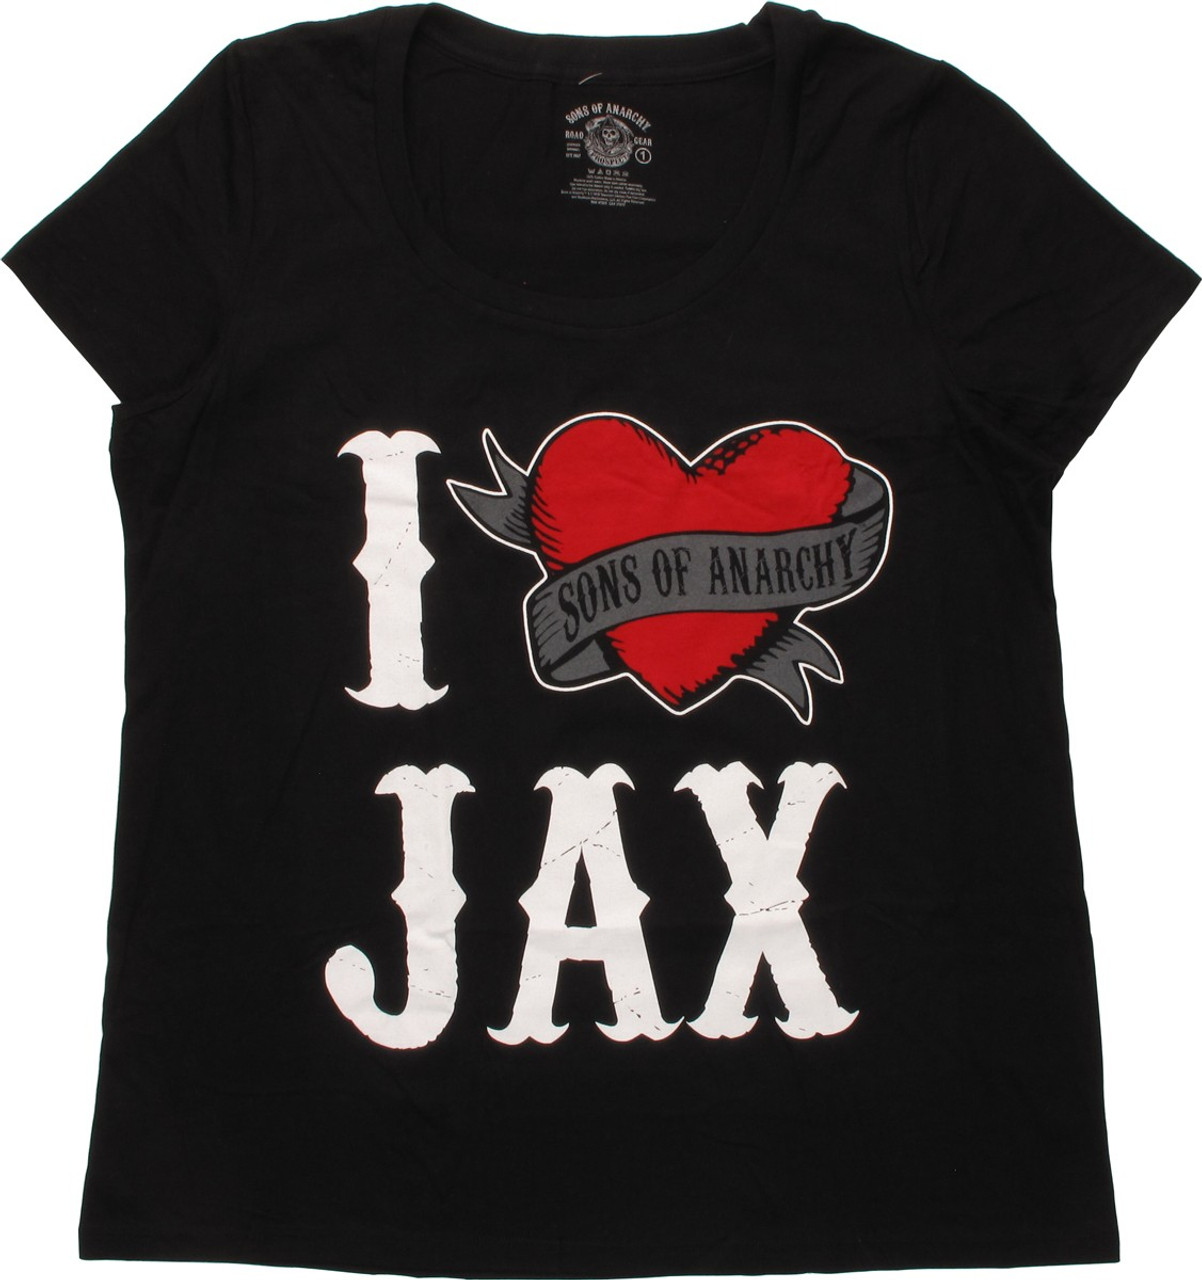 Officially Licensed Sons of Anarchy Jax Teller Men/'s T-Shirt S-XXL Sizes